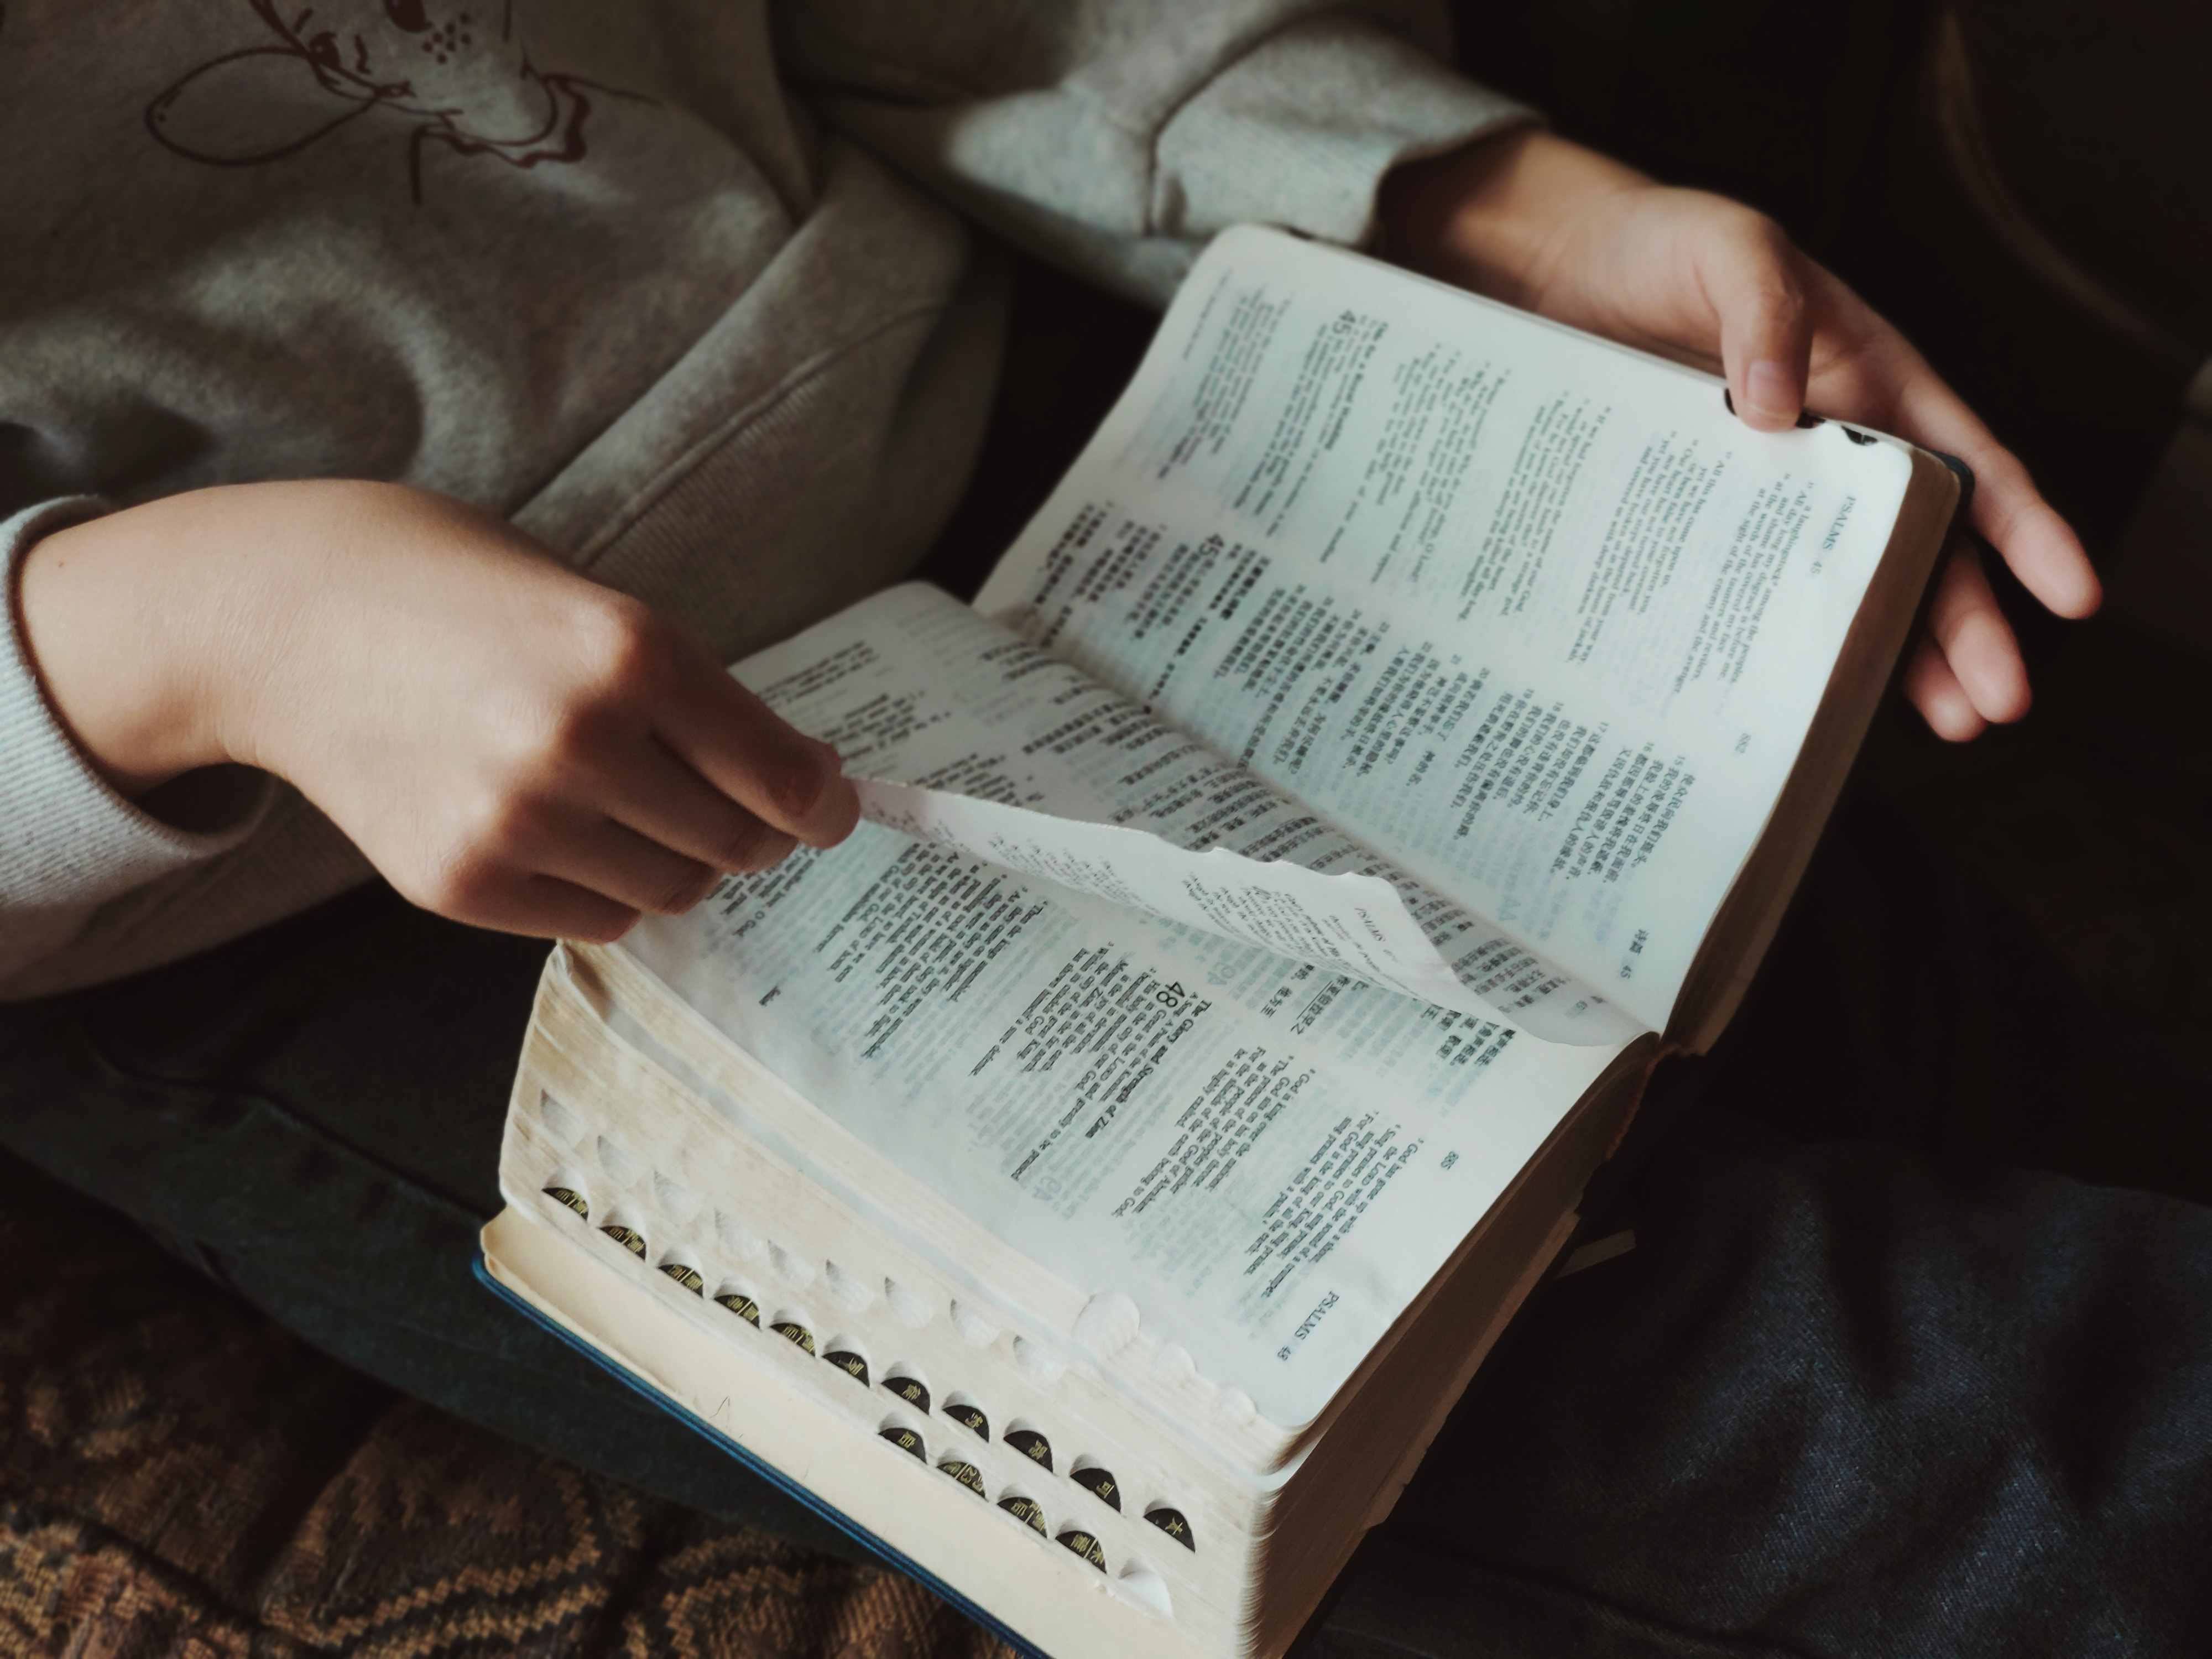 A person sits and reads their Bible, which we see in close up, on their lap. Reading the Bible with non-believer friends is a truly powerful way to share the good news with them.